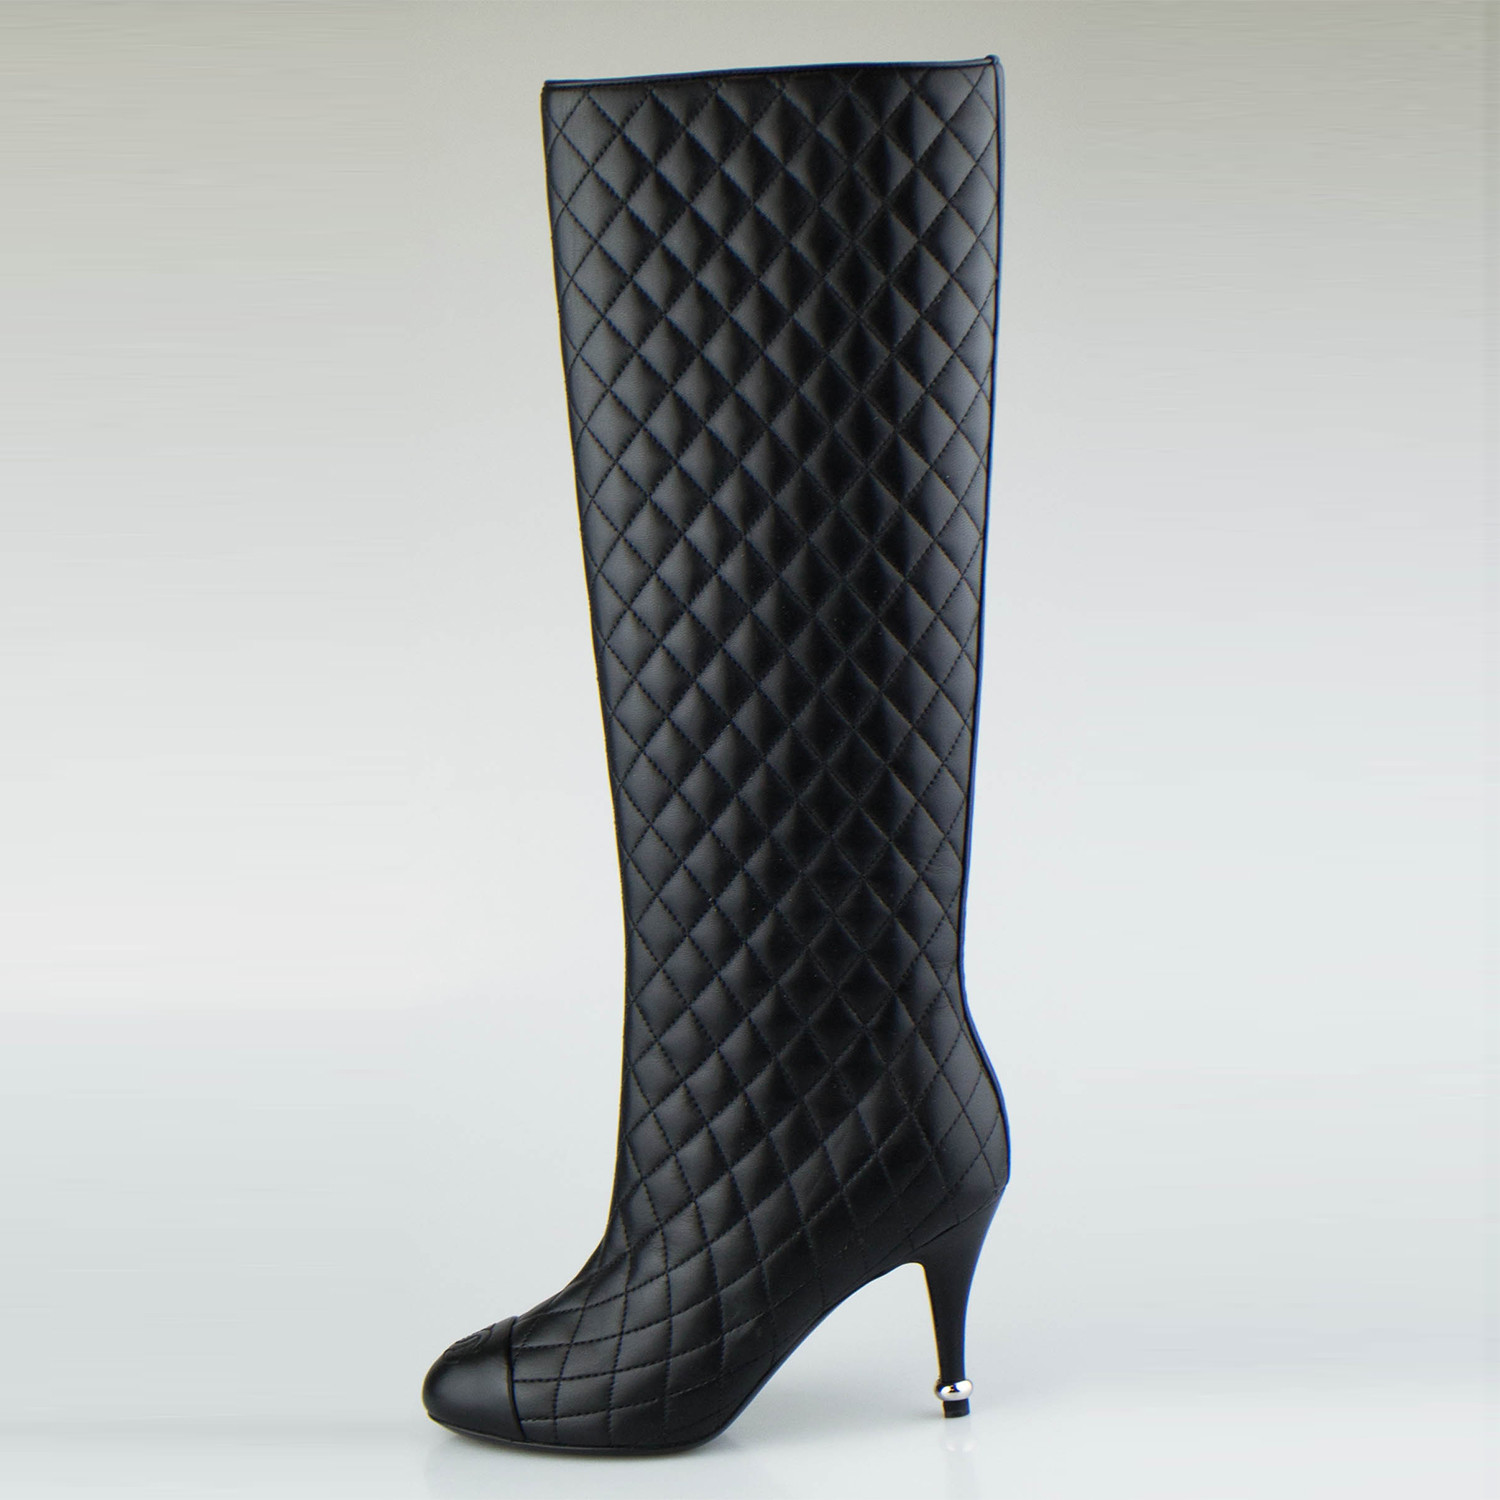 Chanel Quilted Leather Knee High Boots Black Euro 35 The